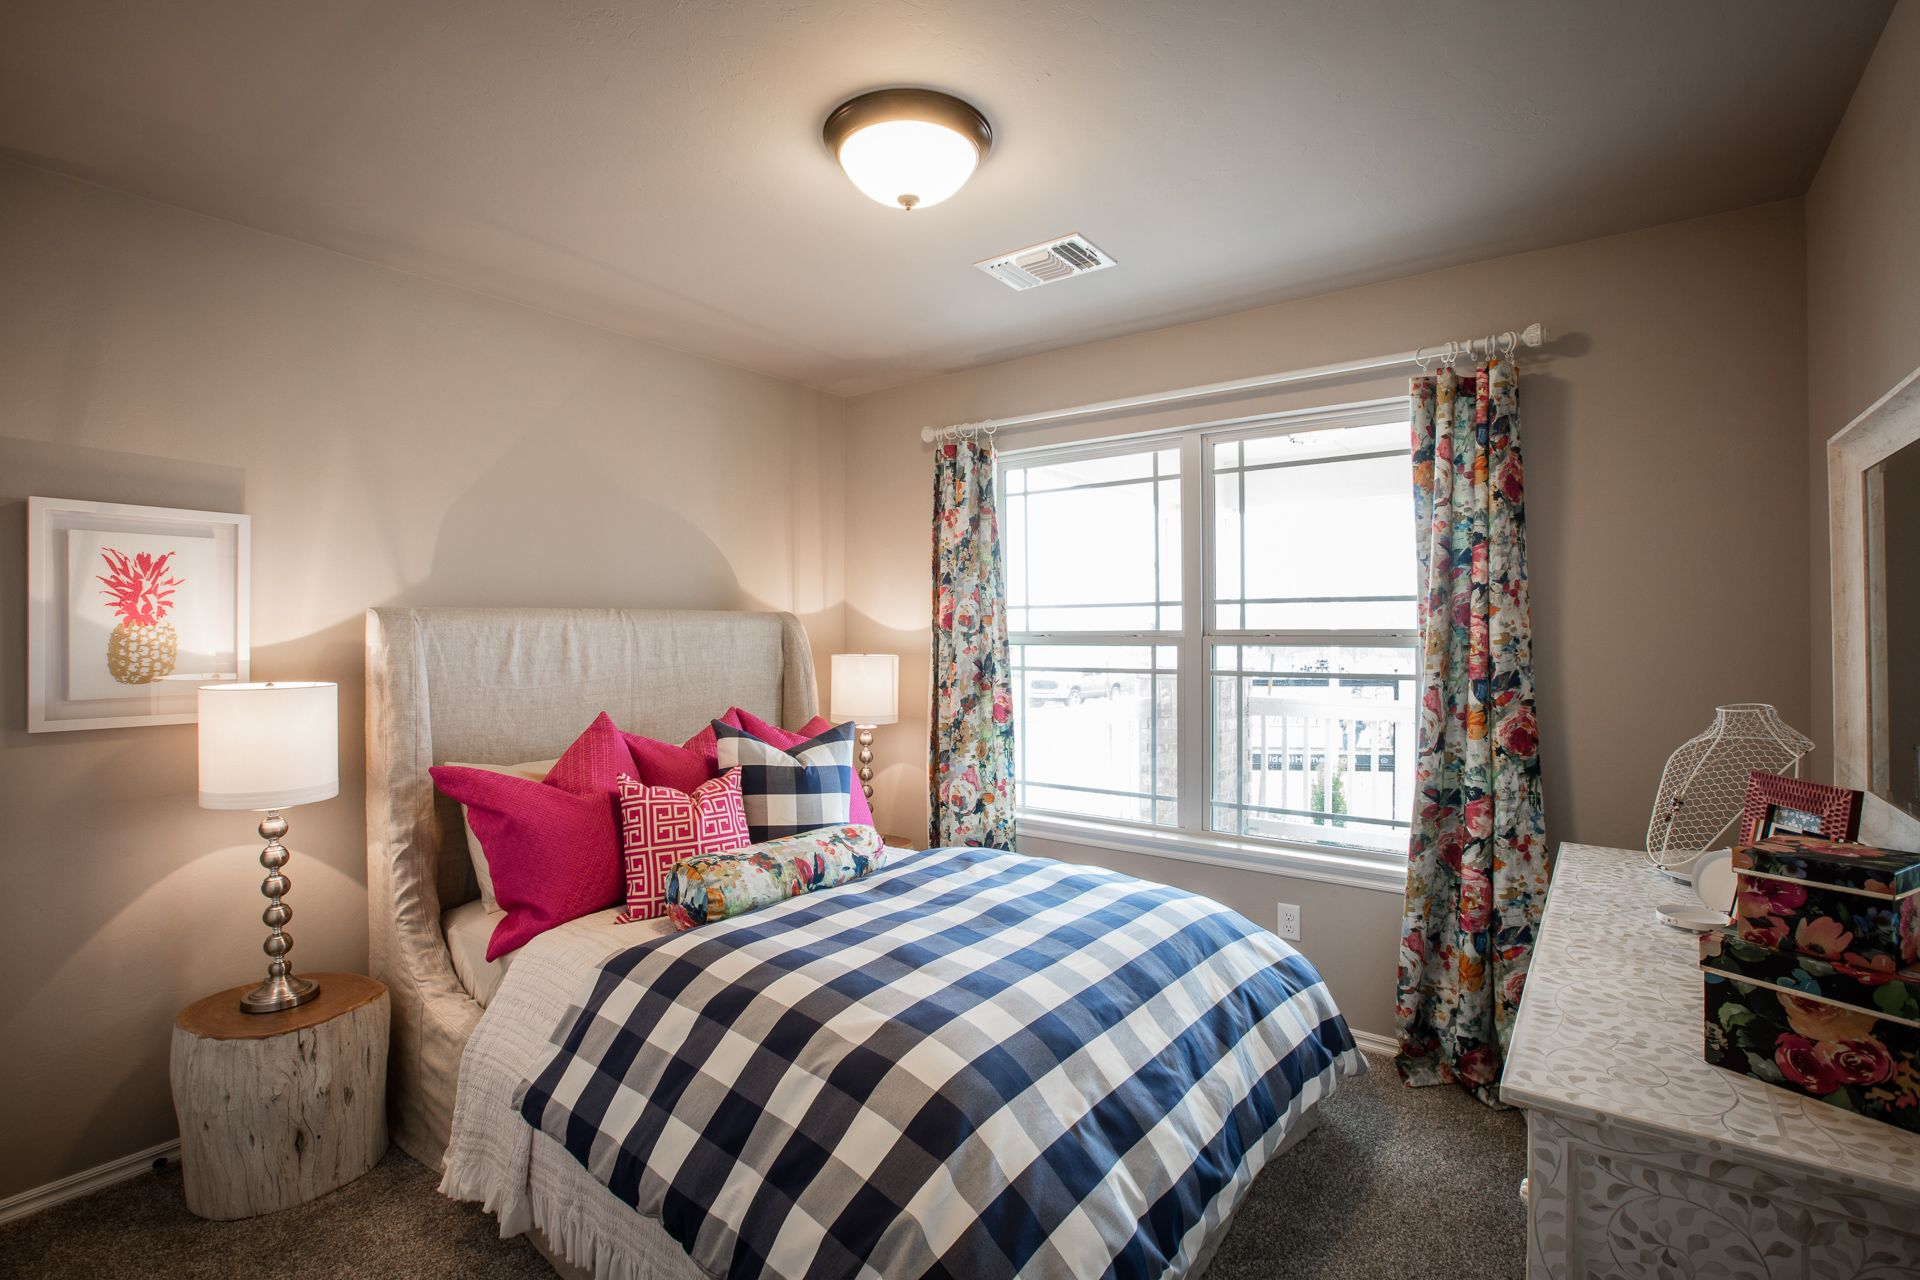 Bedroom featured in the Langley By Ideal Homes in Oklahoma City, OK